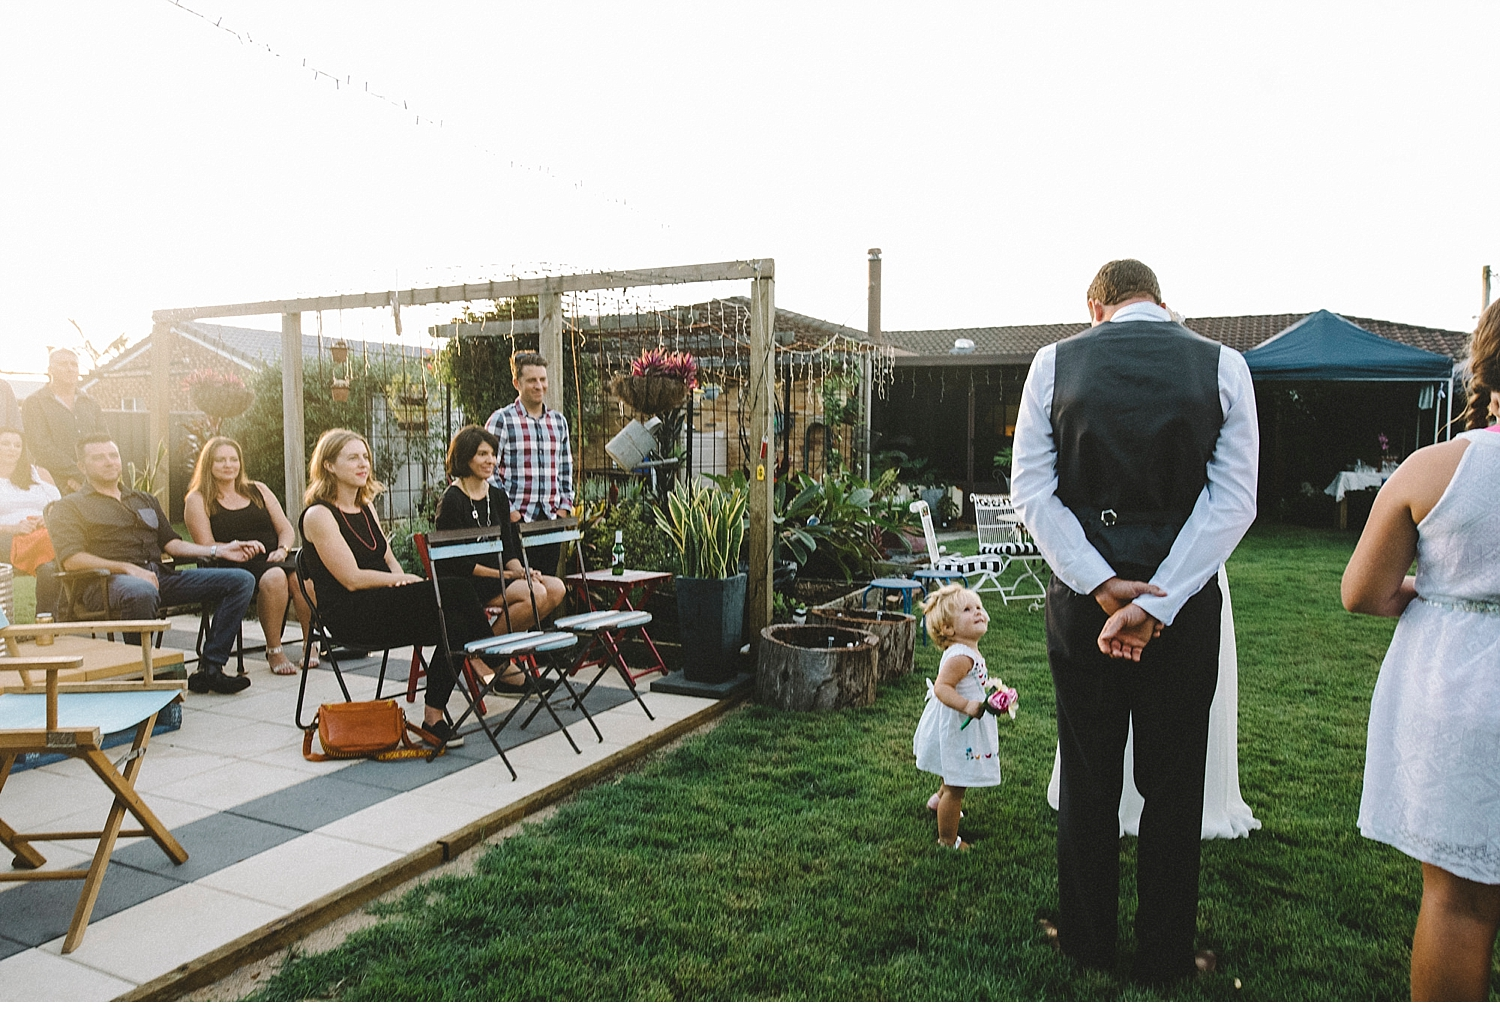 Holly_And_Josh_Morgan_Roberts_Photography 0034.JPG